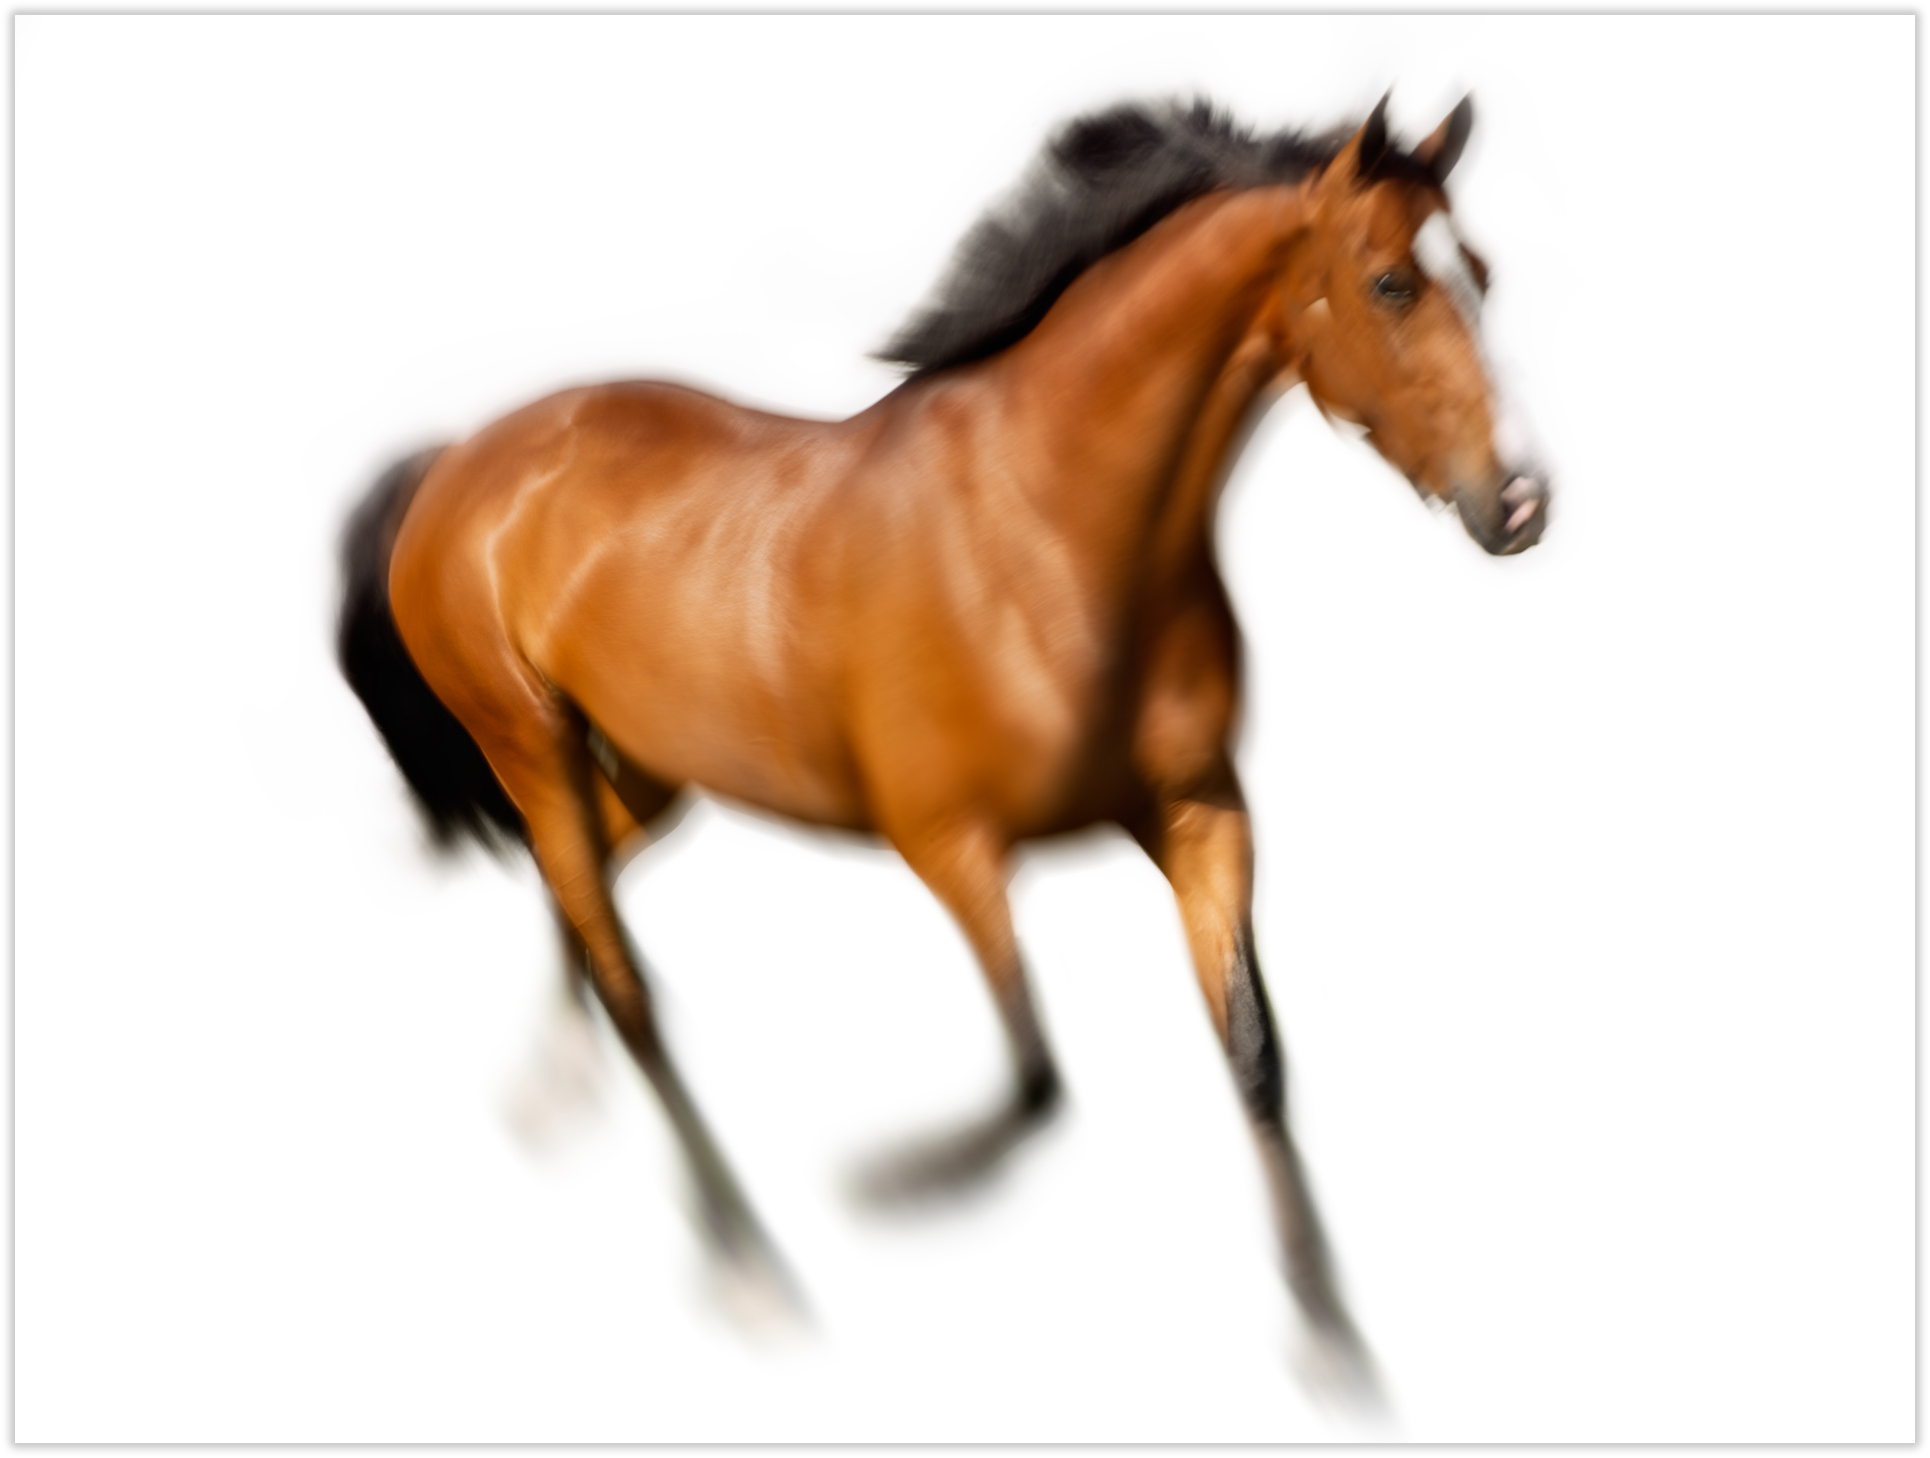 Frederico-Horse-1_044-as-Smart-Object-1_drop